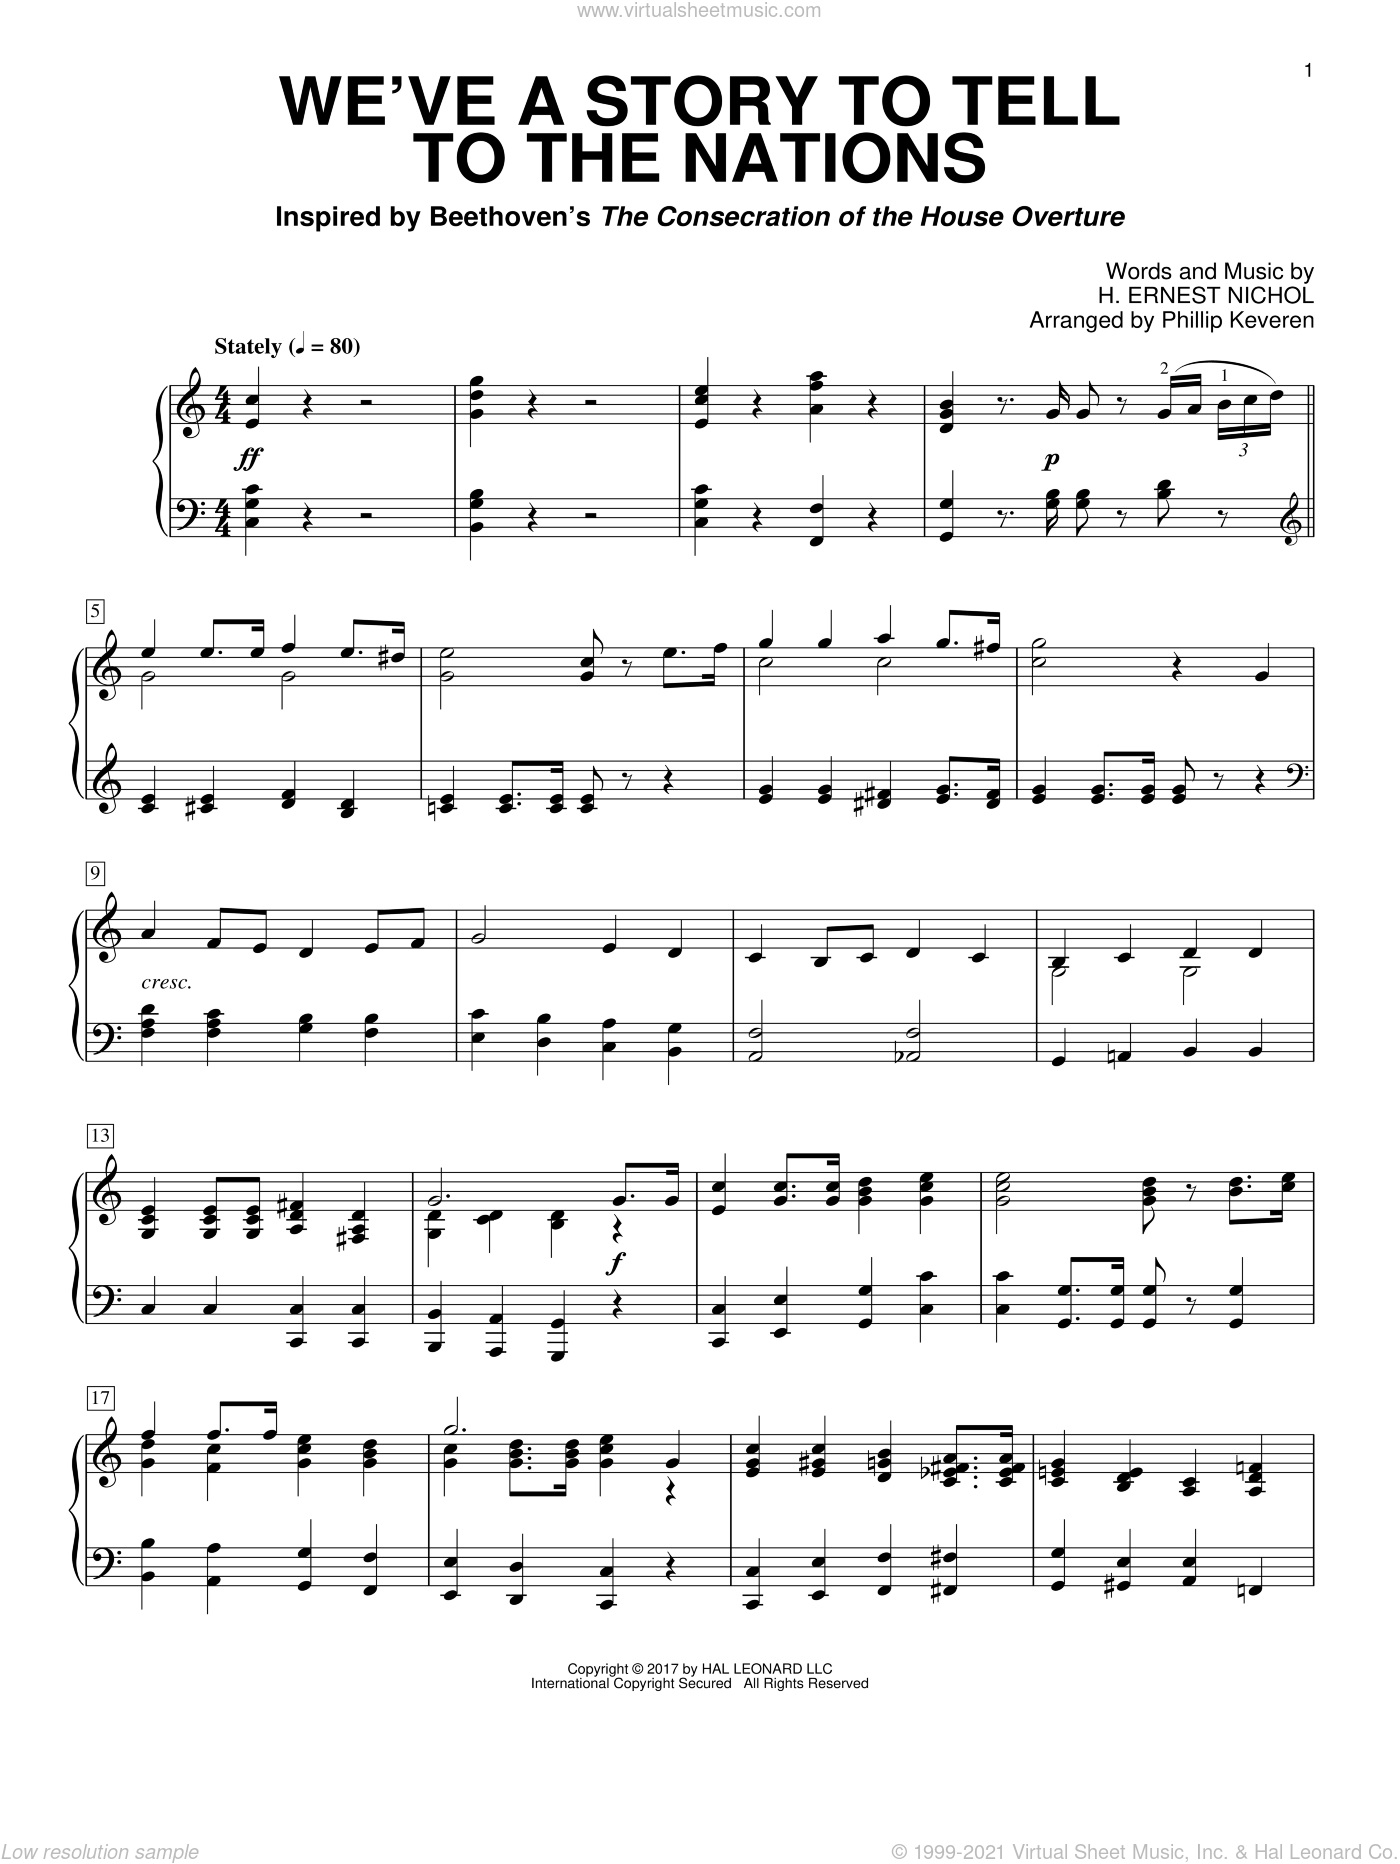 We've A Story To Tell To The Nations sheet music for piano solo by Phillip Keveren and H. Ernest Nichol, intermediate skill level